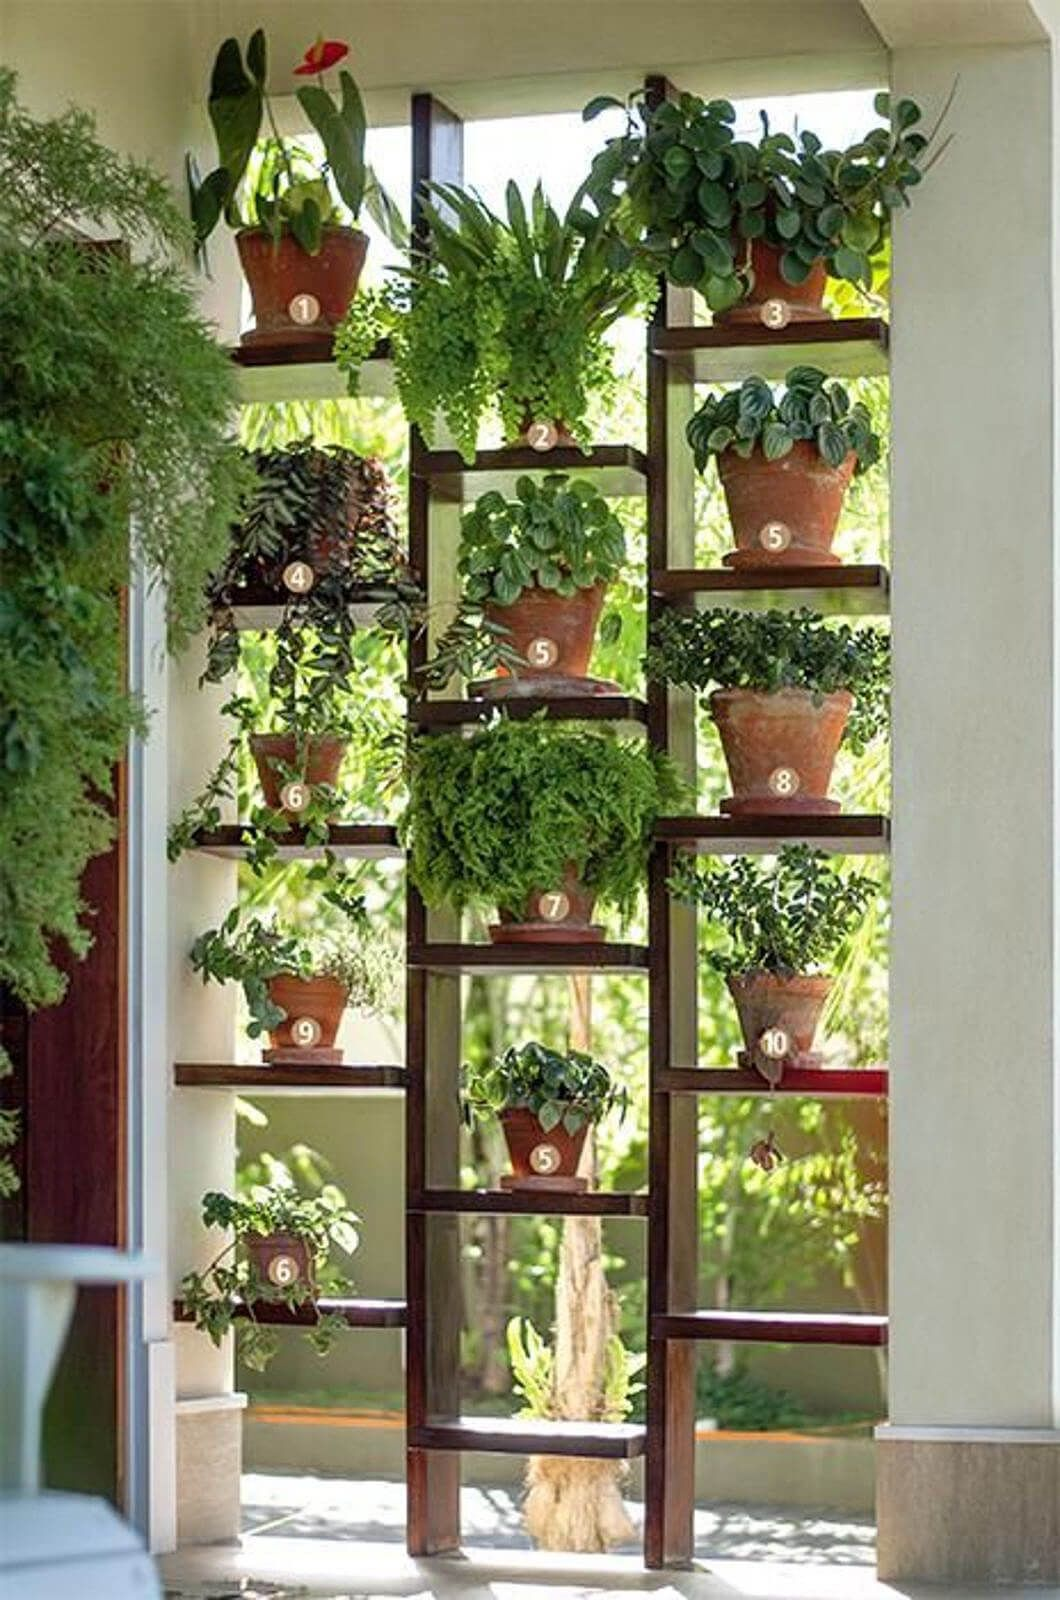 Urban Herb Garden Ideas Part - 26: Ladder-Style Sunny Window Herb Garden Landscaping Landscape Designing Ideas  ATTENTION: Have You Always Wanted To Redesign Your Homeu0027s Landscape But  Donu0027t ...